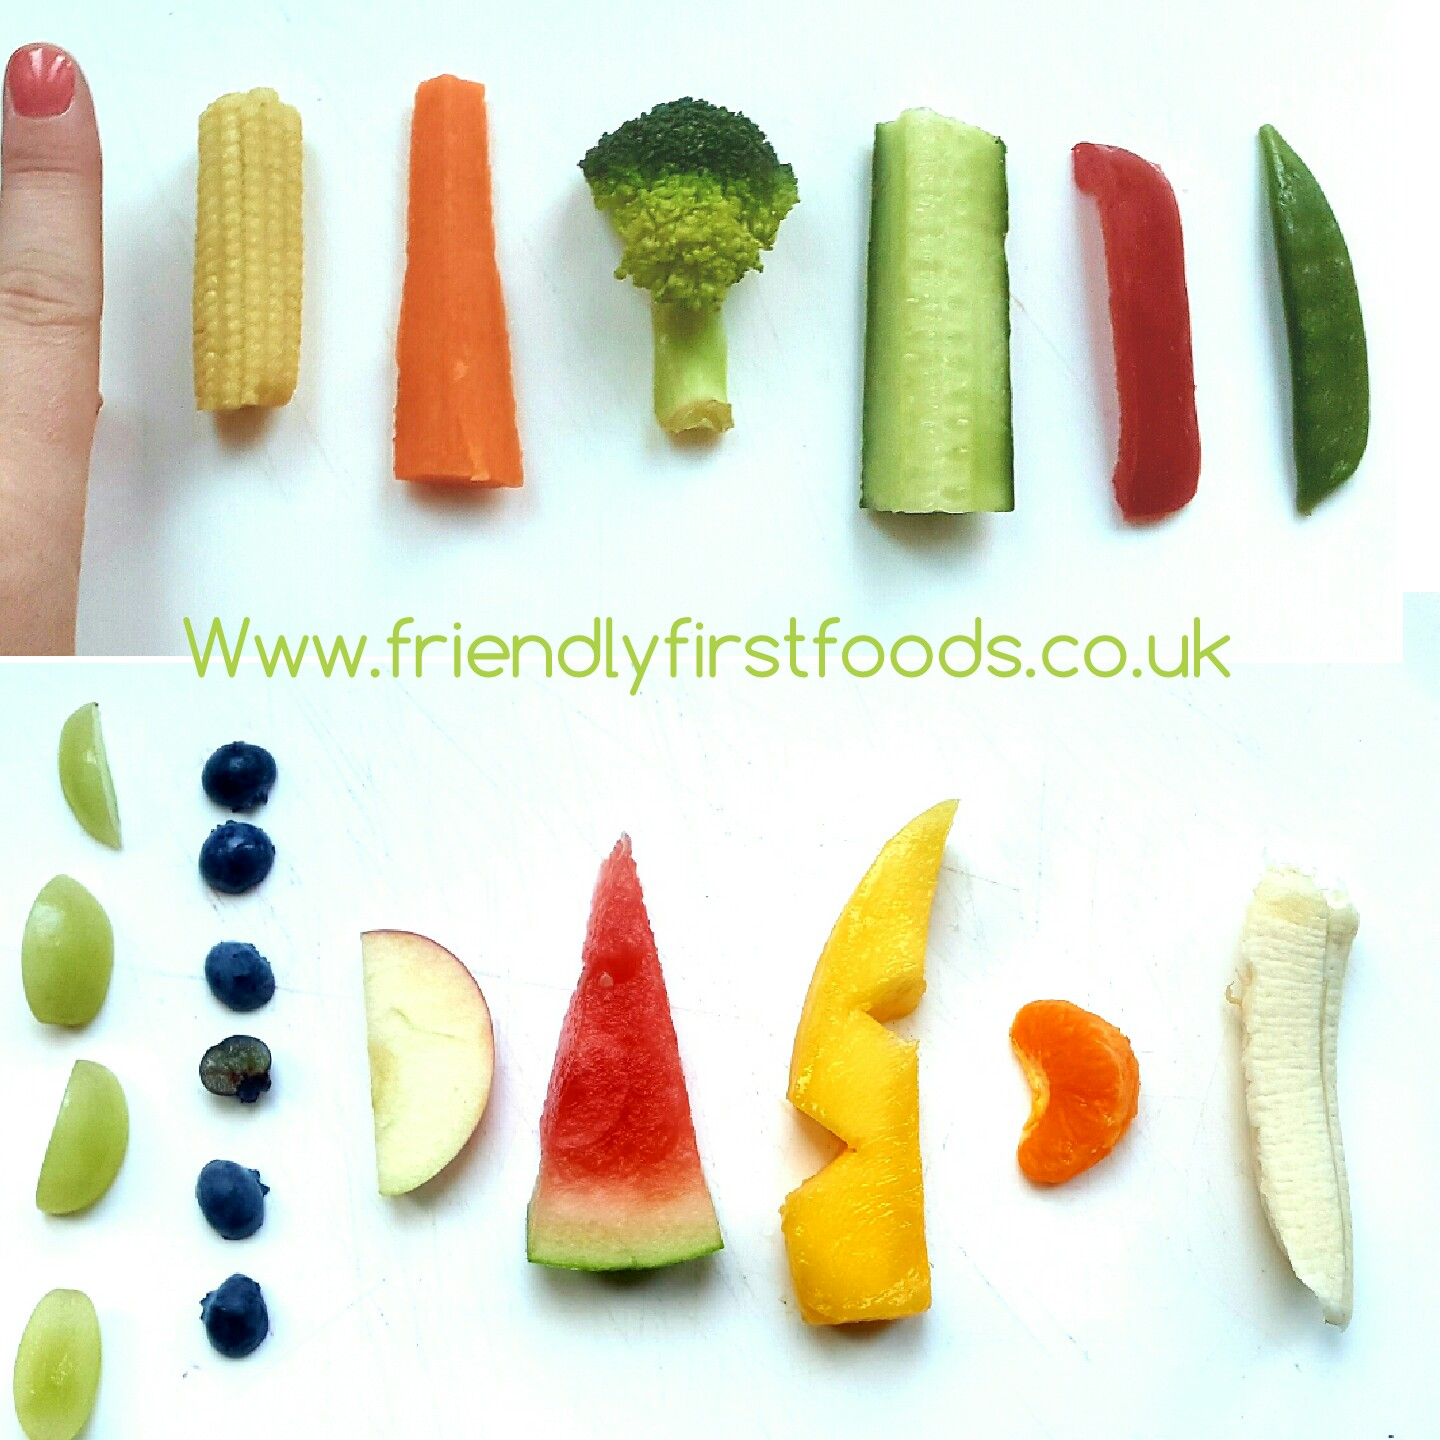 Finger food size guide and a really useful banana hack ...